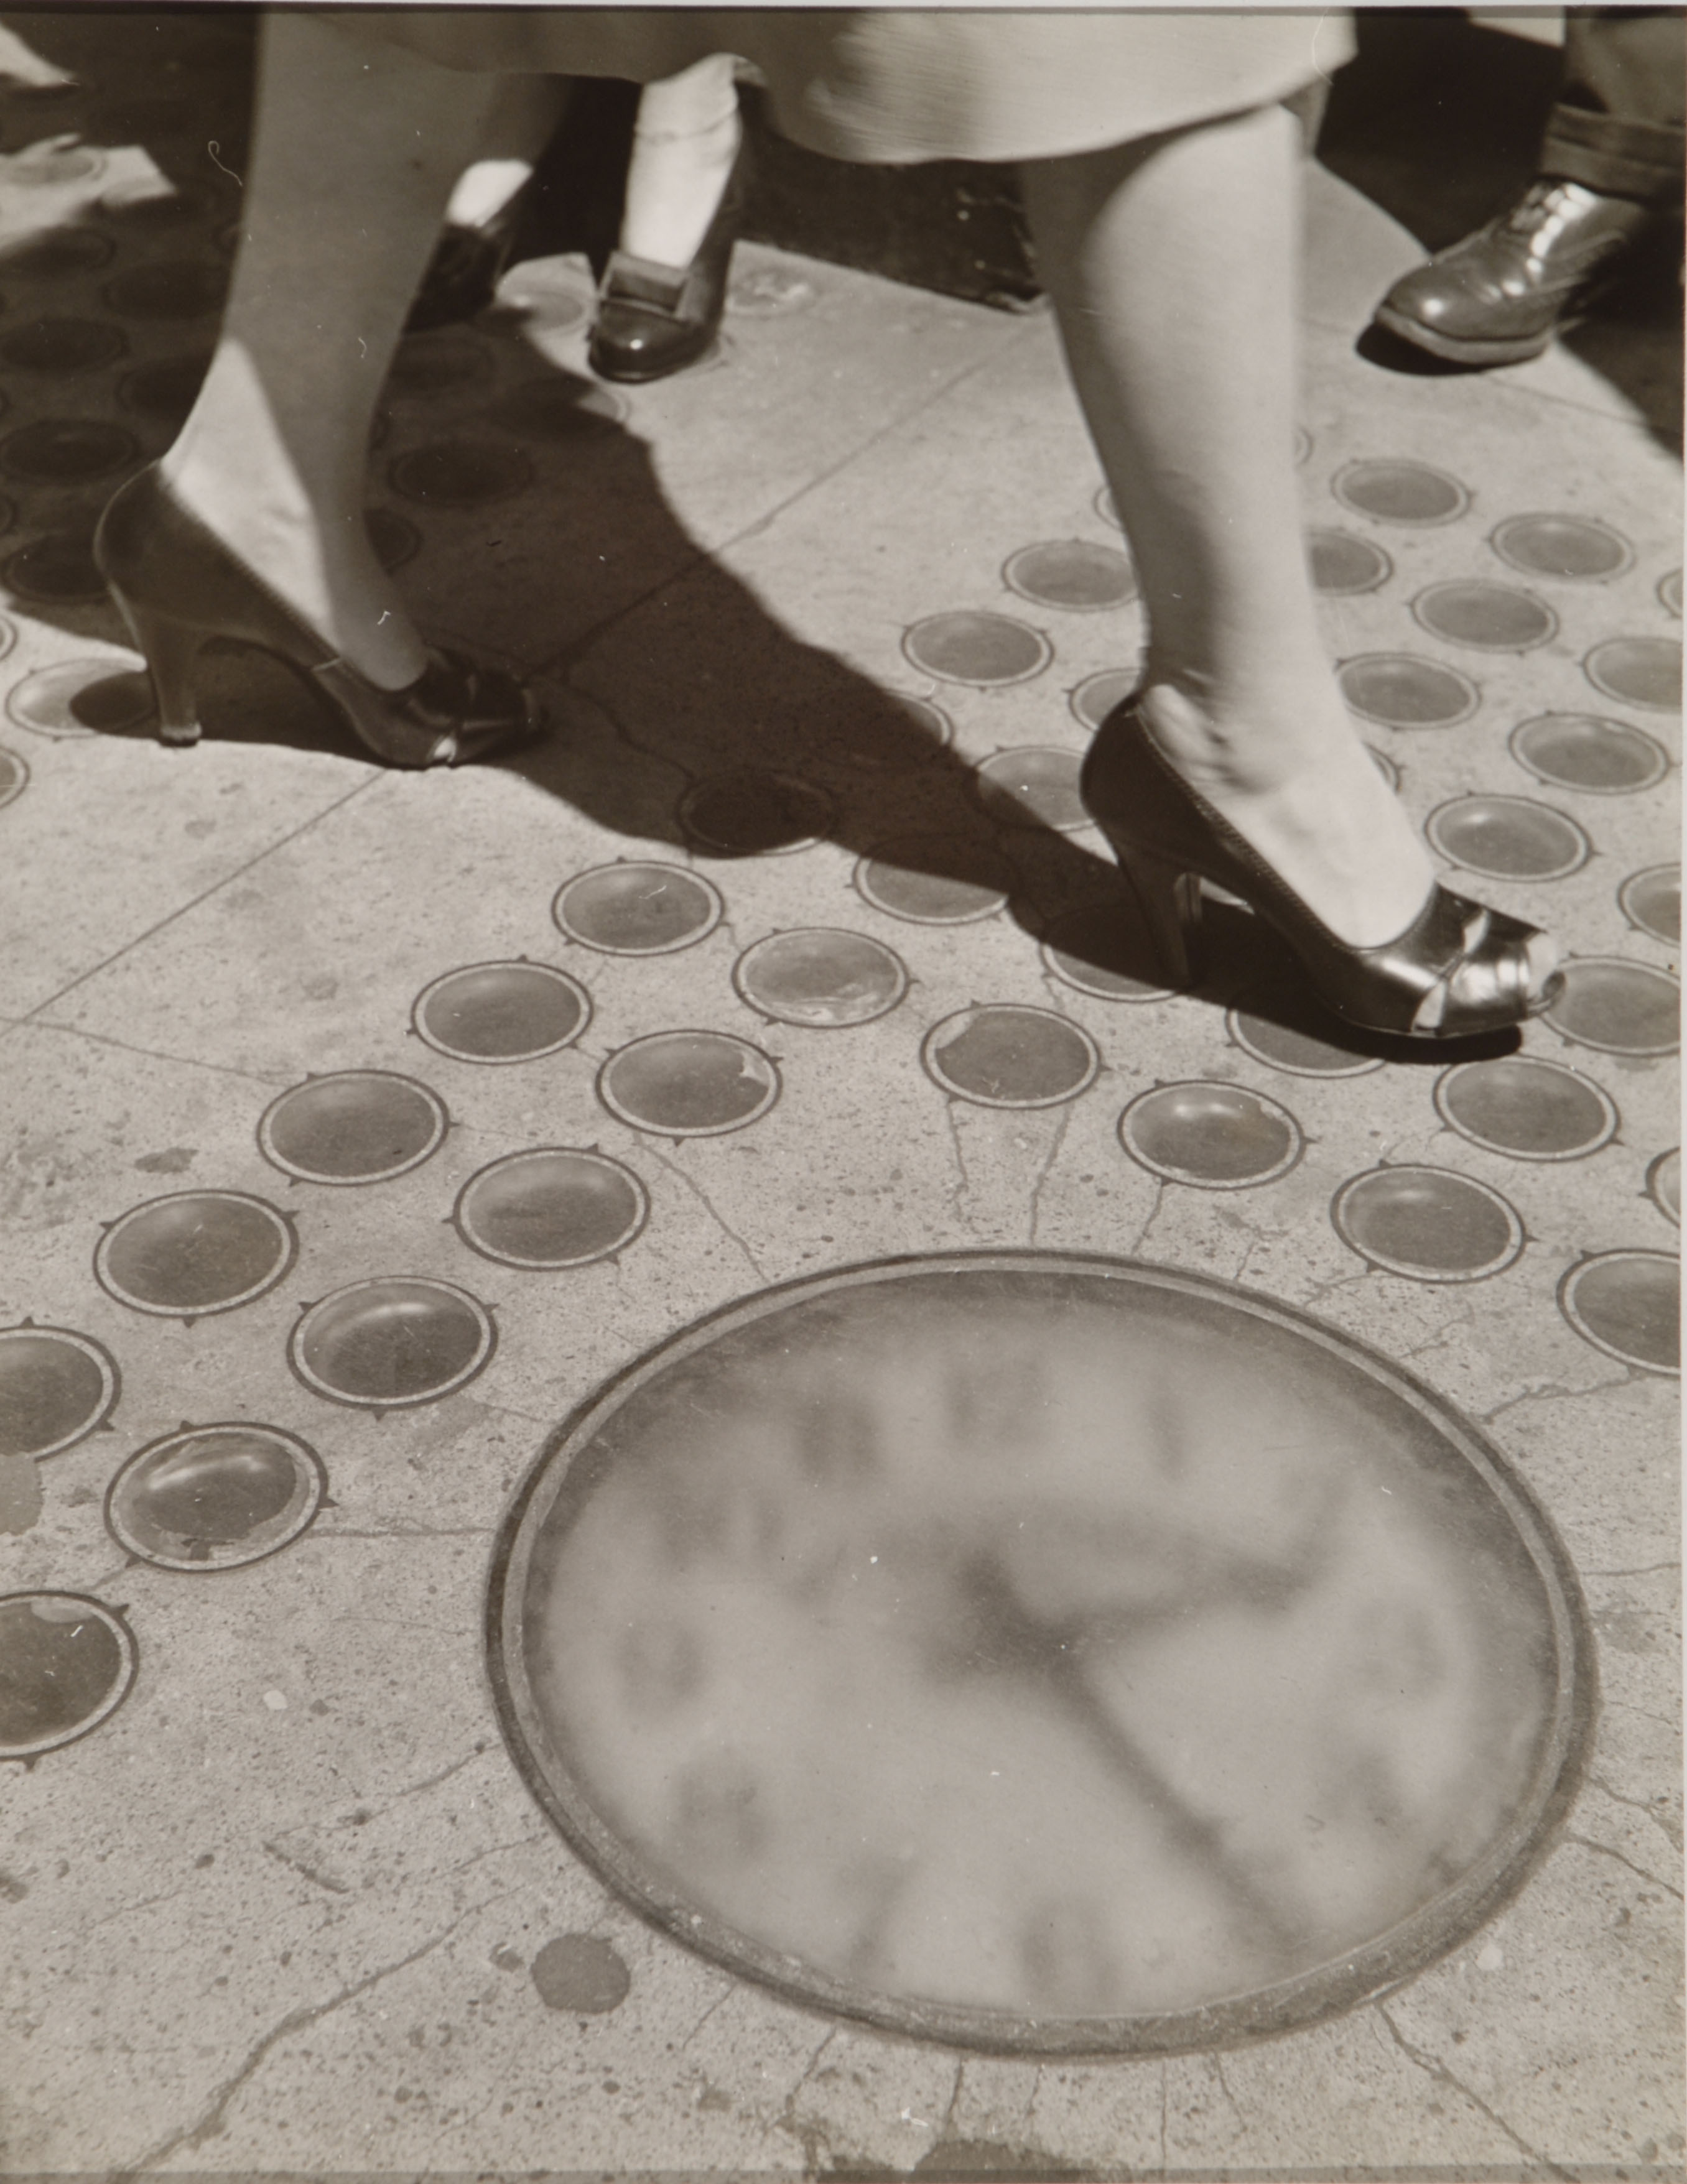 Ida Wyman, Sidewalk Clock, New York, 1947, gelatin silver print.  Columbus Museum of Art, Ohio, Photo League Collection, Museum Purchase, Derby Fund.  c Ida Wyman.